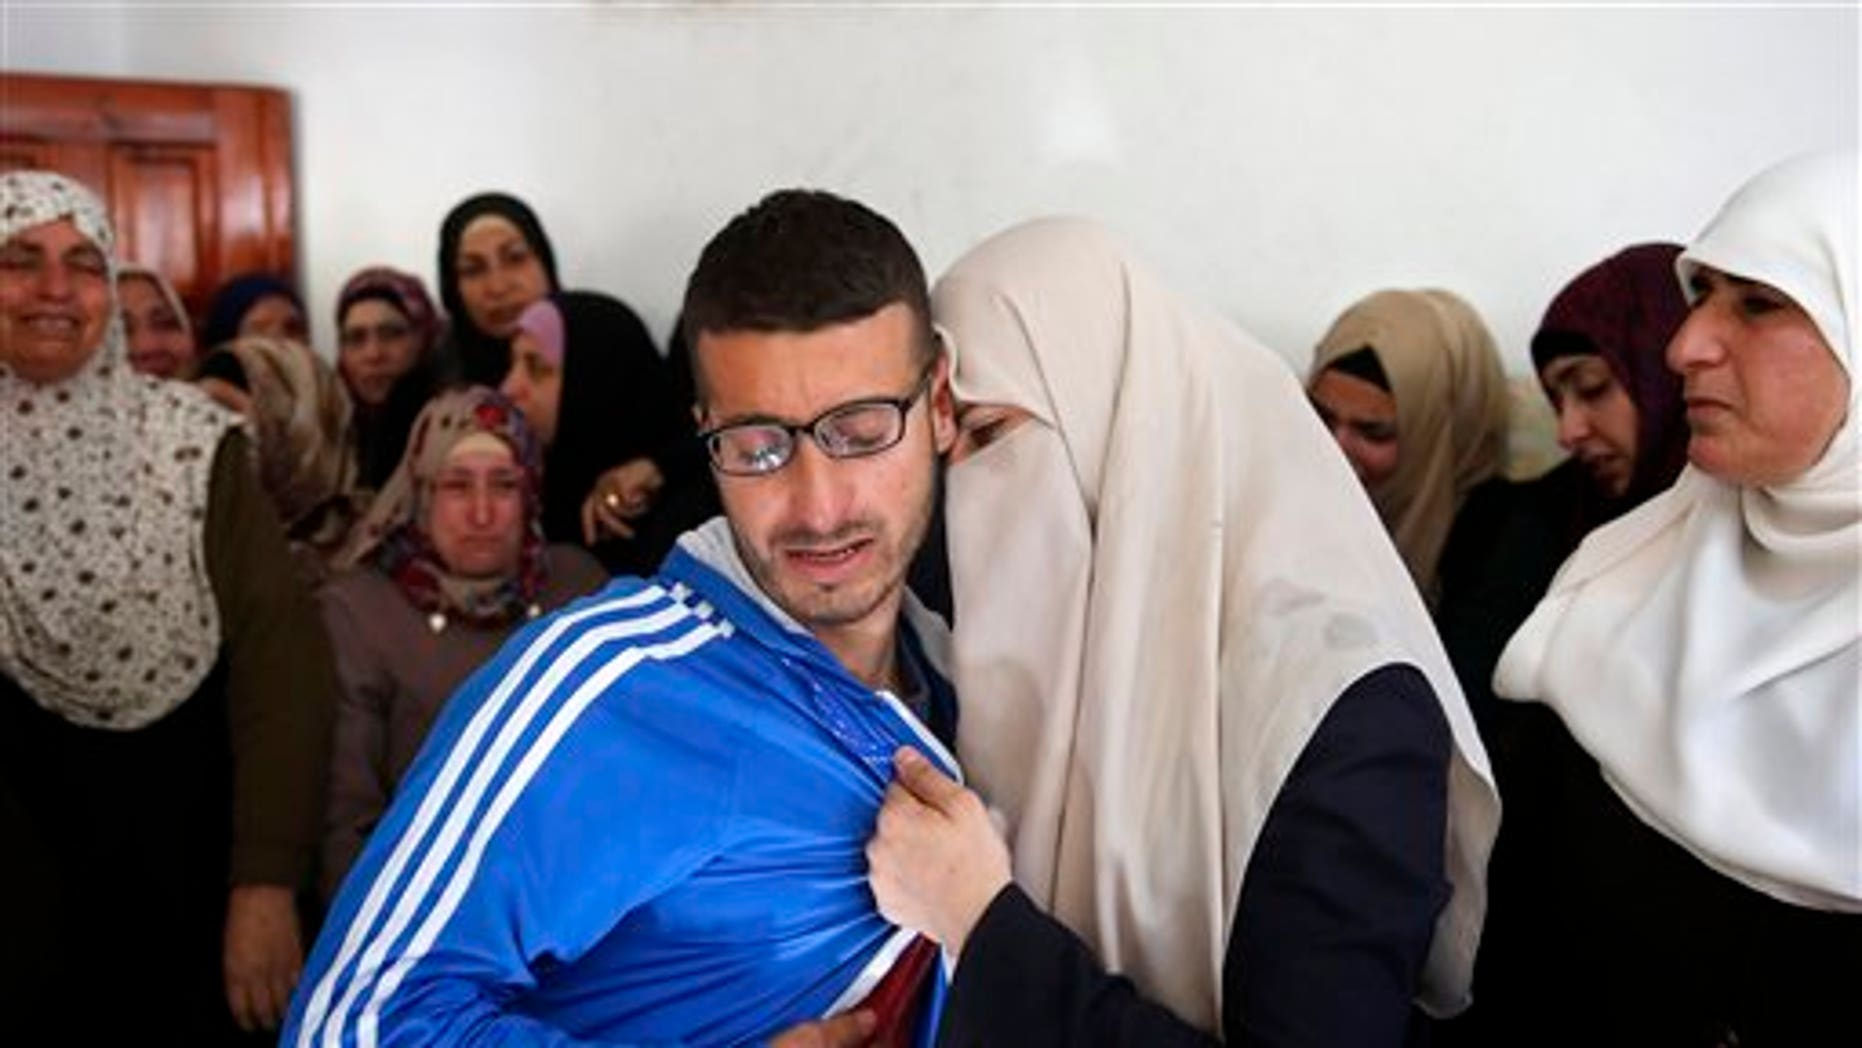 Palestinians mourn for 27-year-old Abdallah Shalaldeh. Israeli forces disguised in traditional Arab outfits burst into a hospital overnight Thursday, killing Shalaldeh, according to officials there.